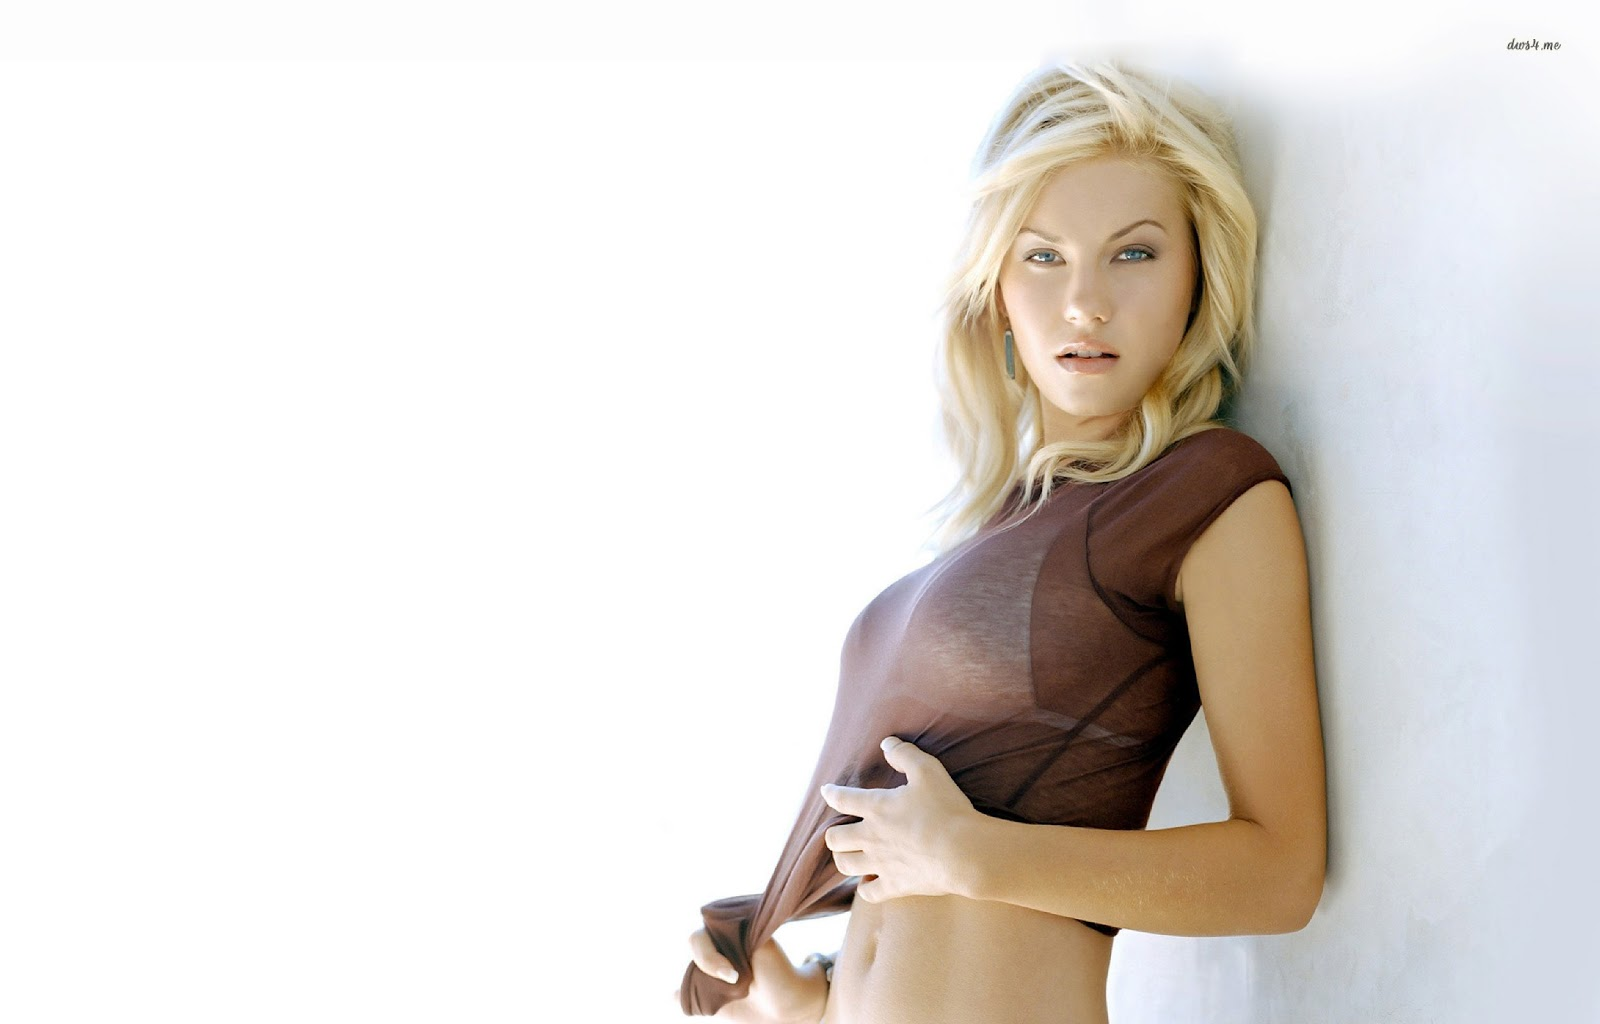 elisha cuthbert hot wallpapers - sf wallpaper